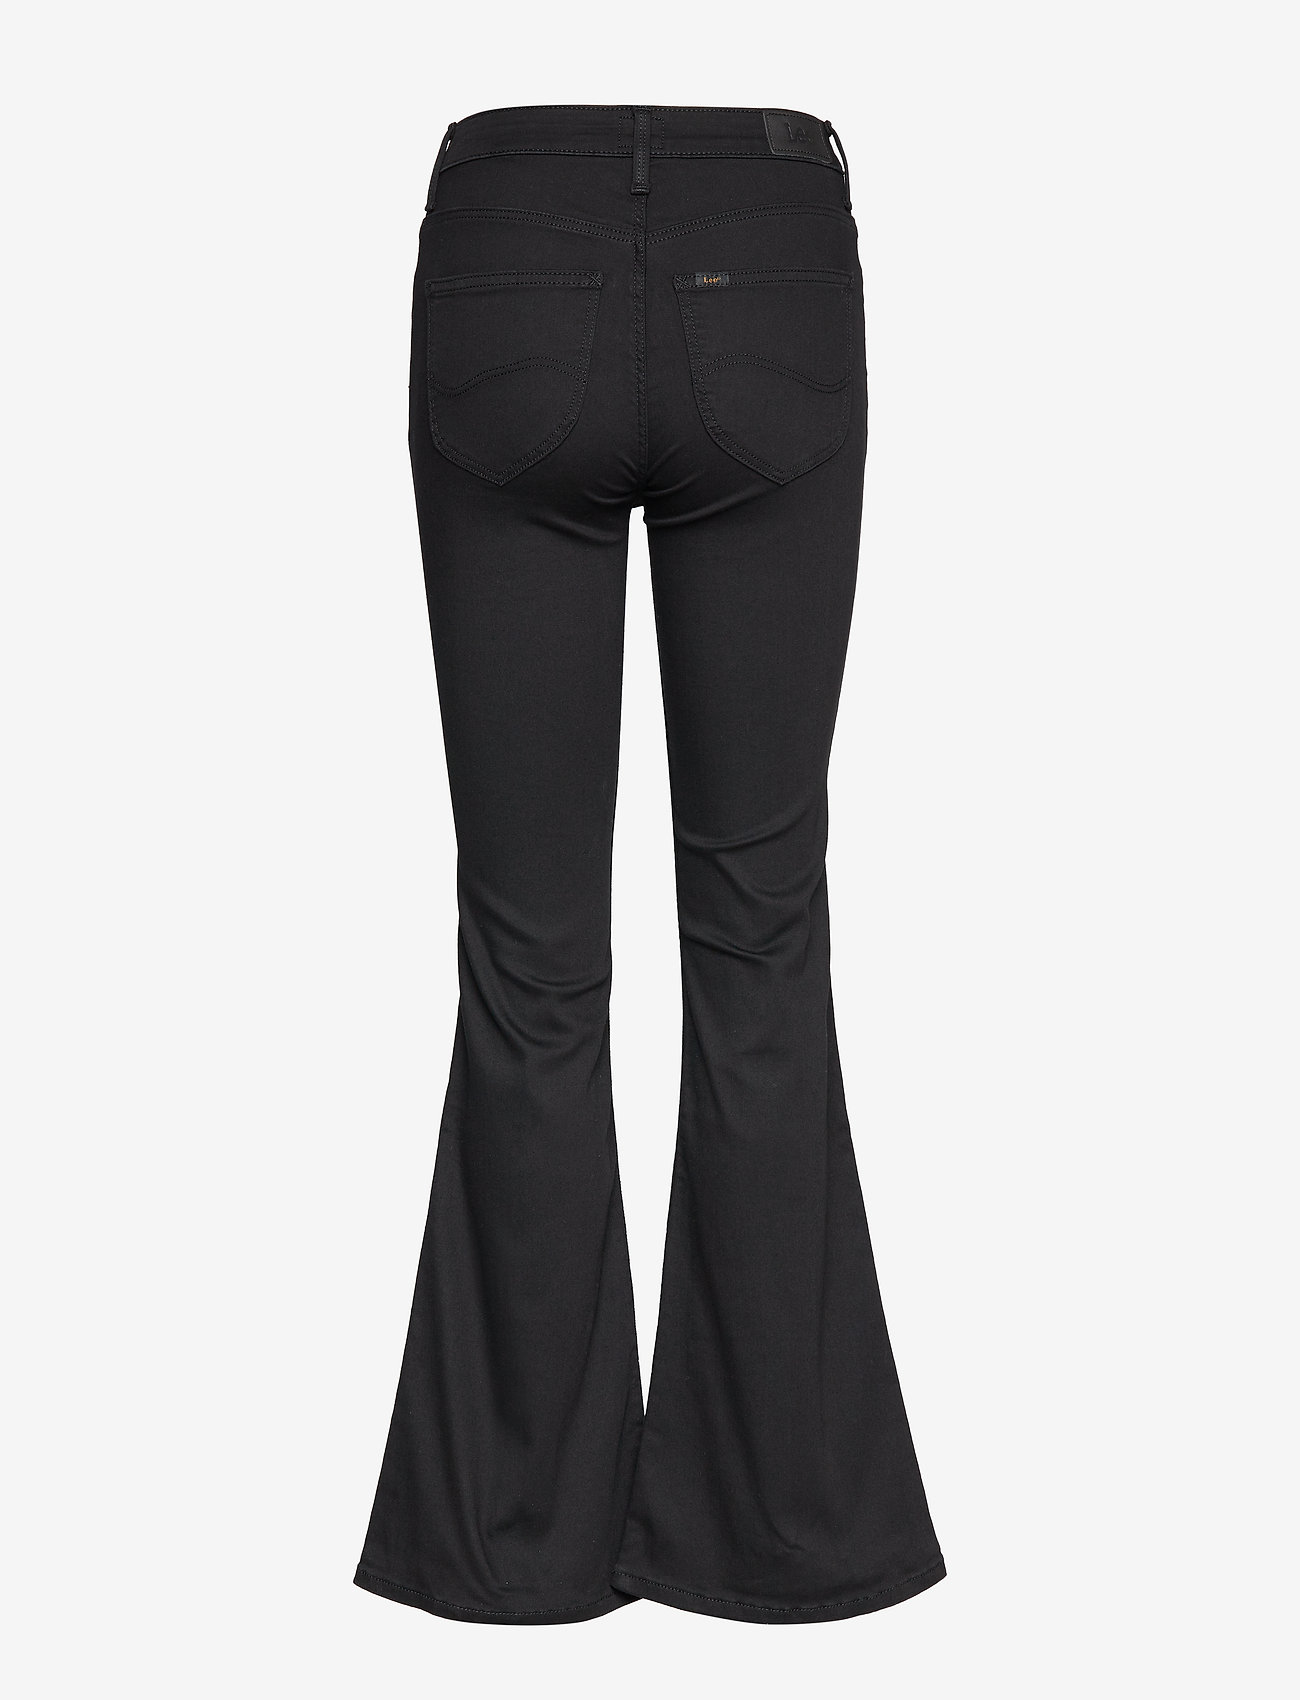 Lee Jeans - BREESE - schlaghosen - black rinse - 1